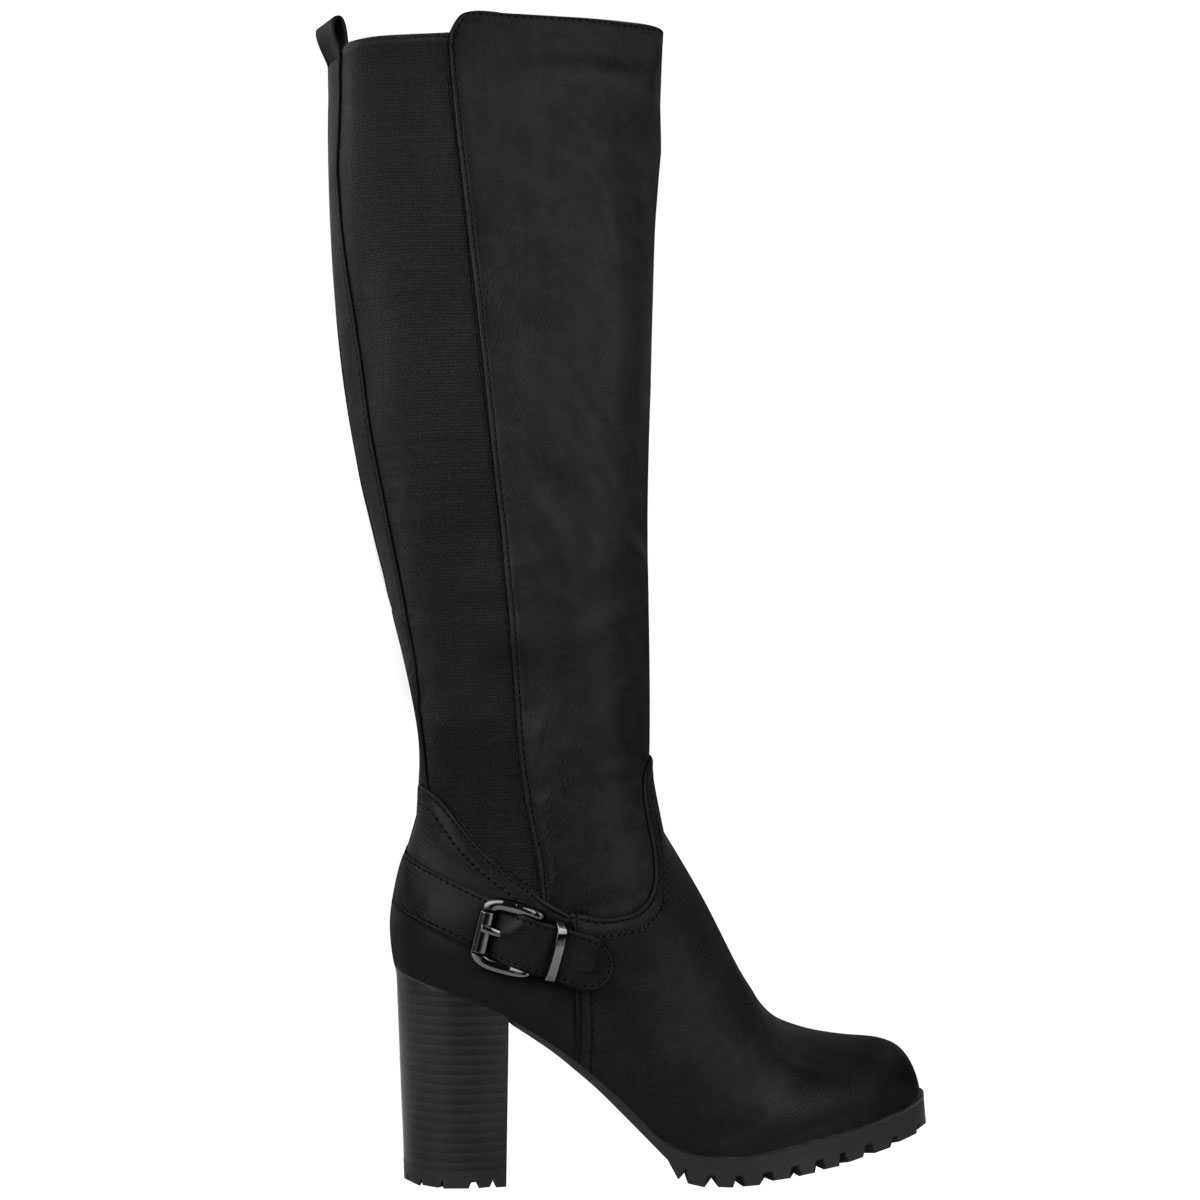 Womens-Ladies-Knee-Calf-High-Boots-Block-Heels-Stretchy-Thigh-Shoes-Grip-Size thumbnail 3